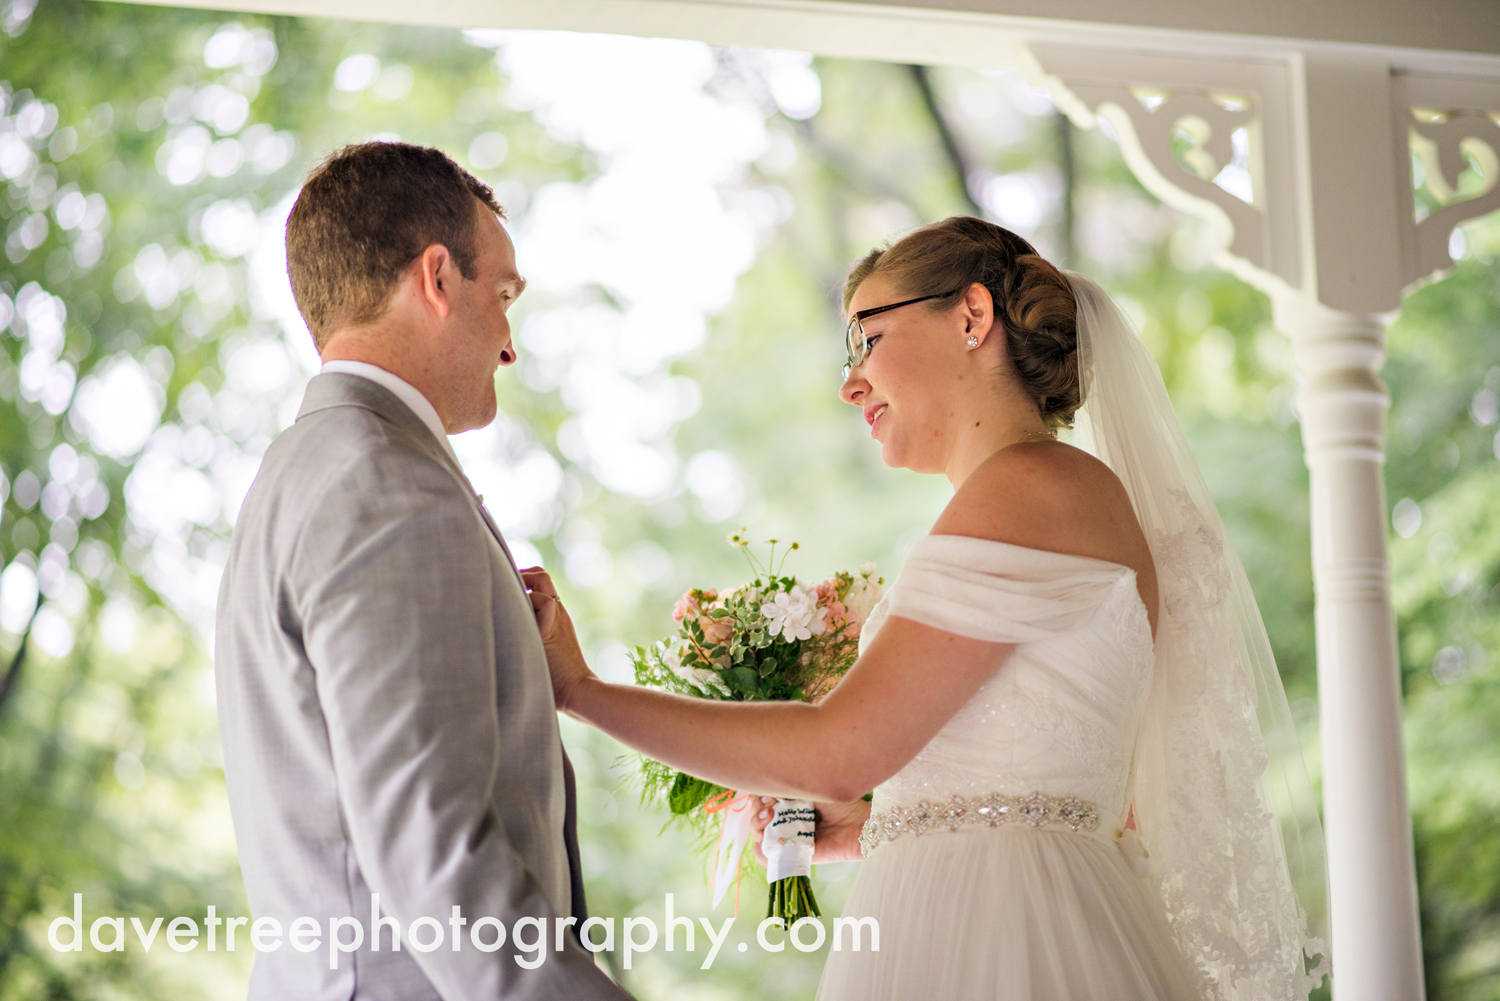 grand_haven_wedding_photographer_weaver_house_wedding_167.jpg